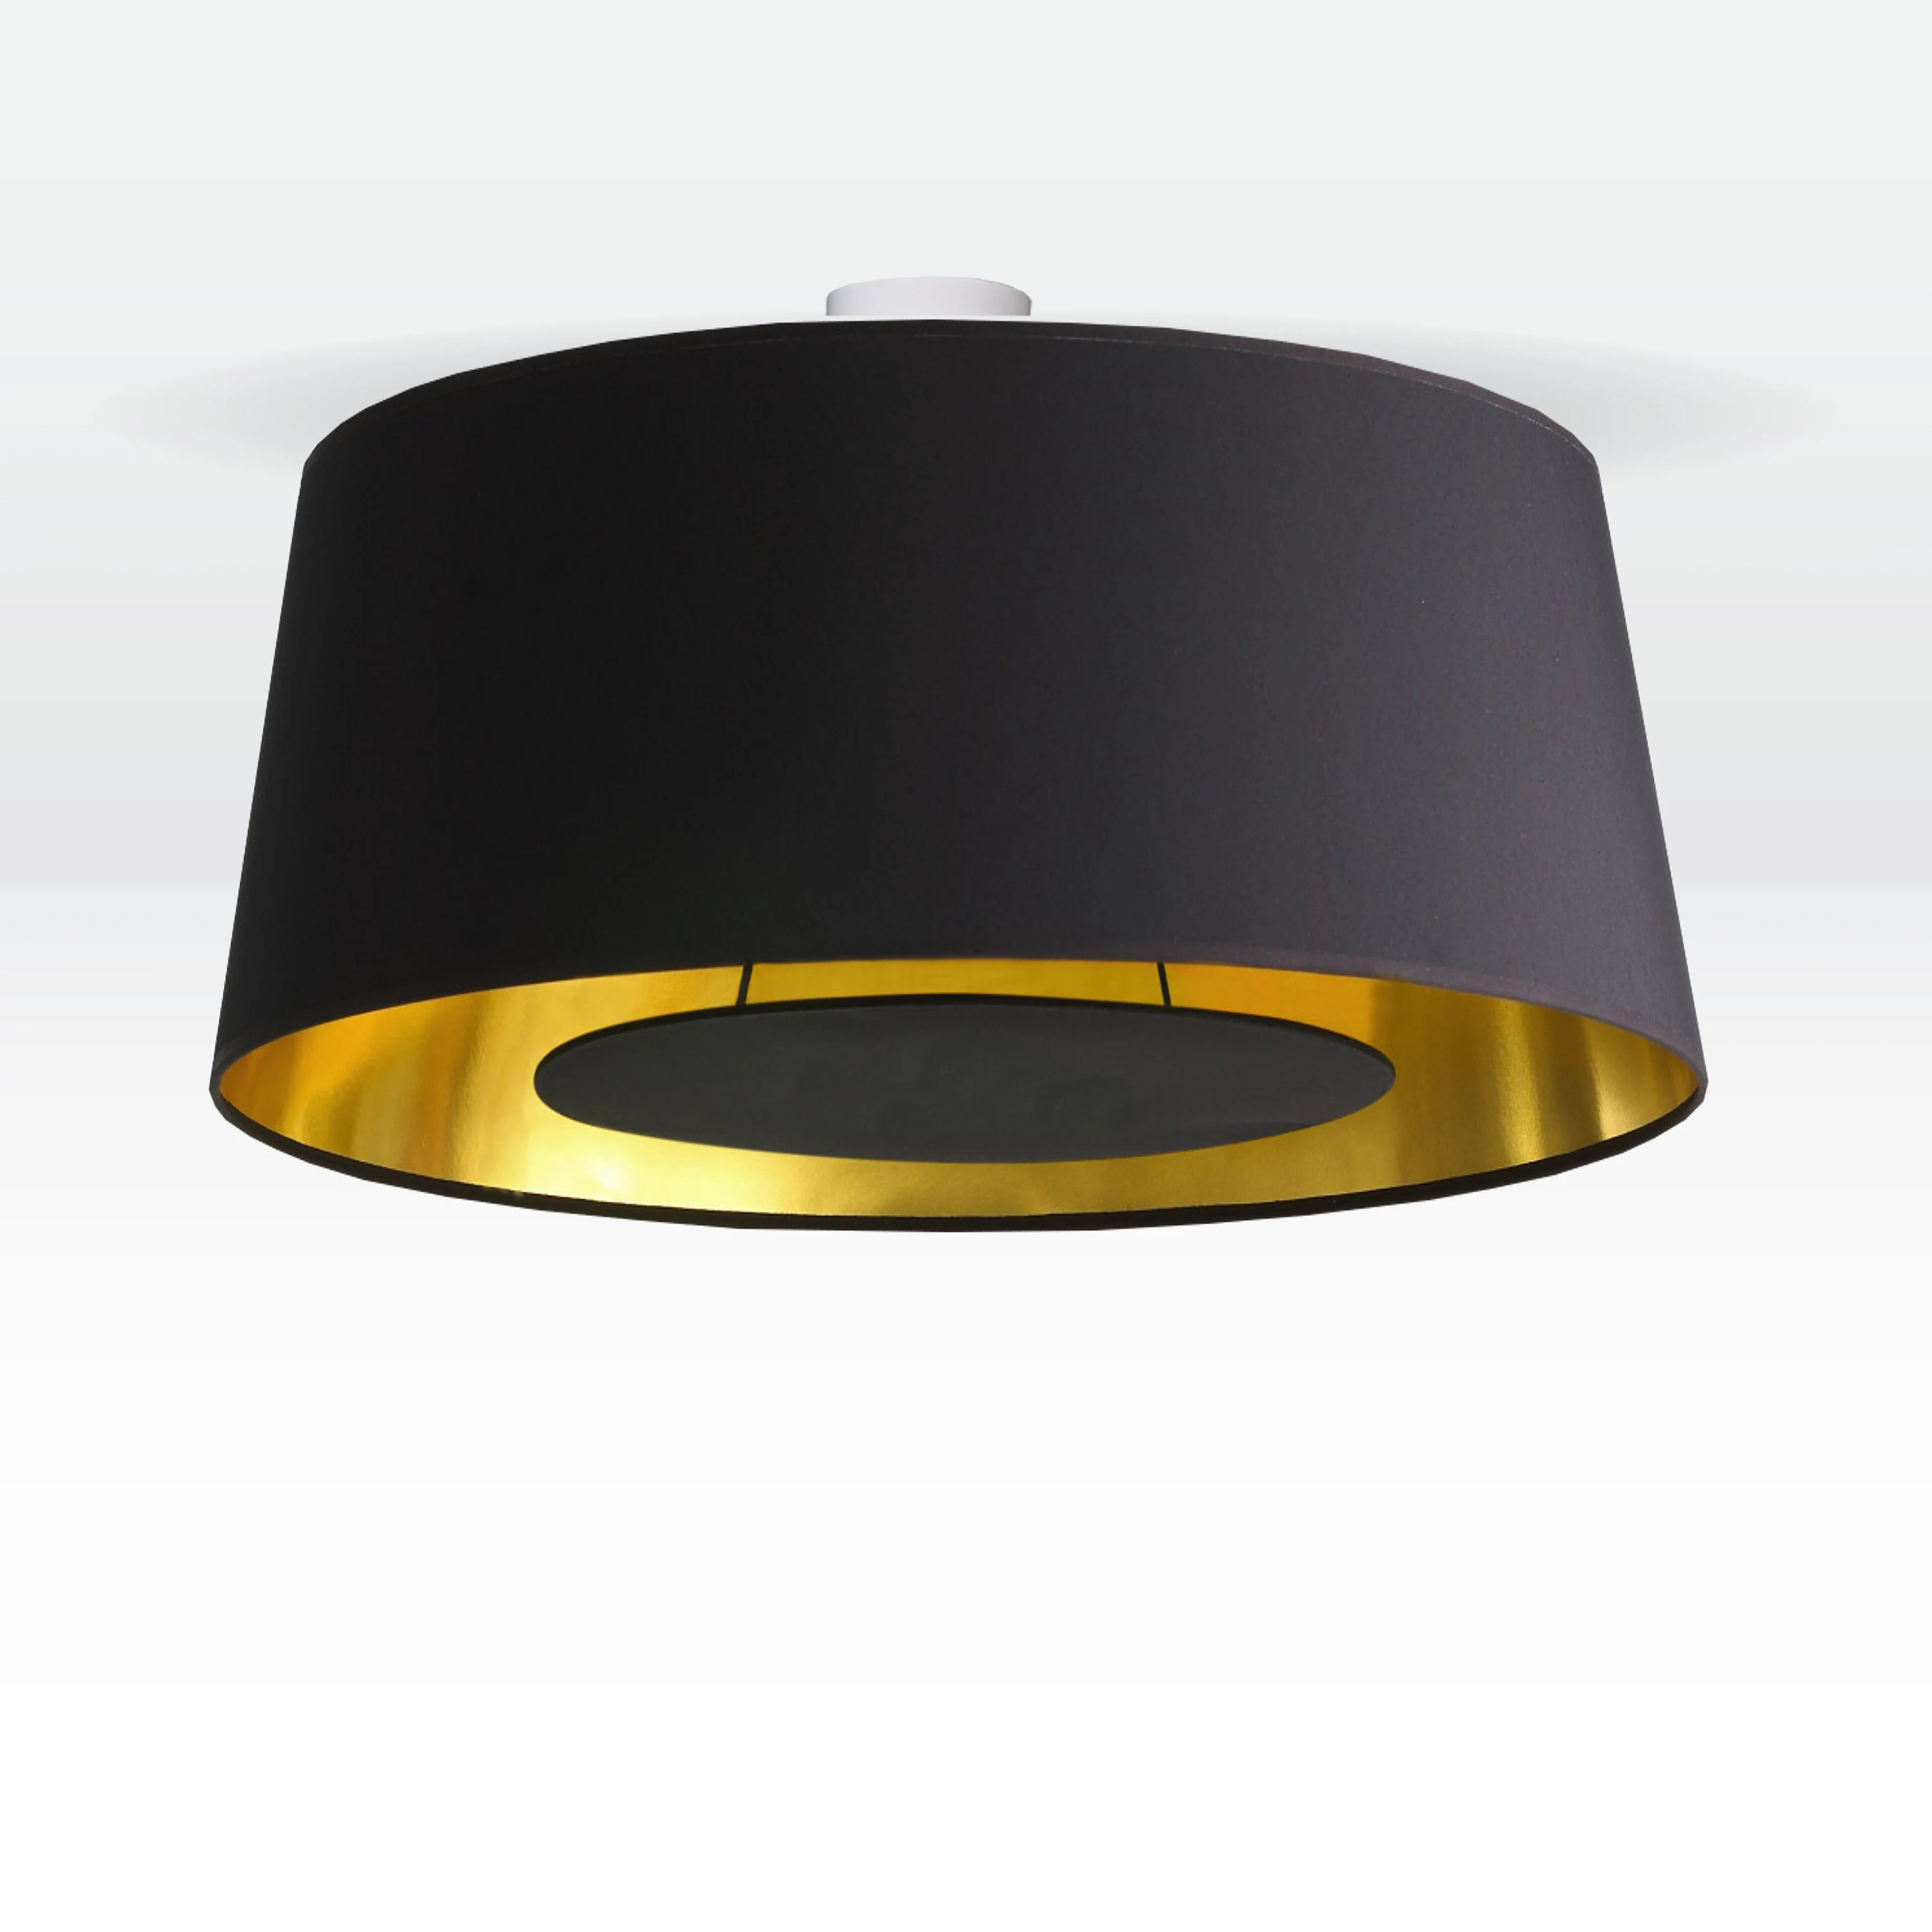 Lichthaus Worpswede Ceiling Lamp 70 Cm Conical Gold Black